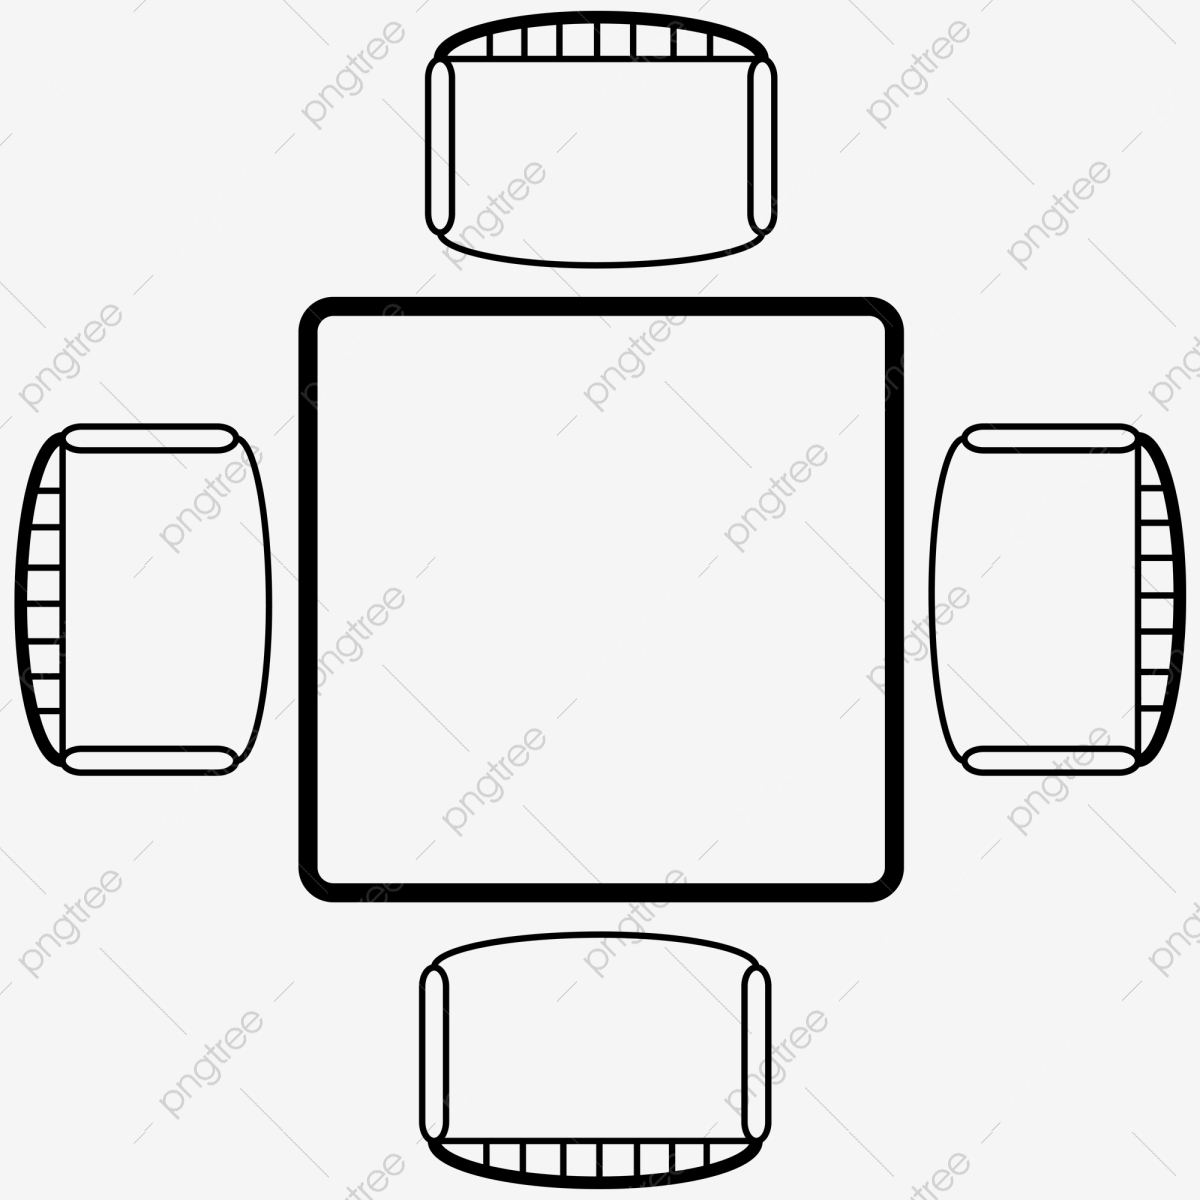 Table And Chair Plan, Table And Chair, Schematic, Table And Chair ...